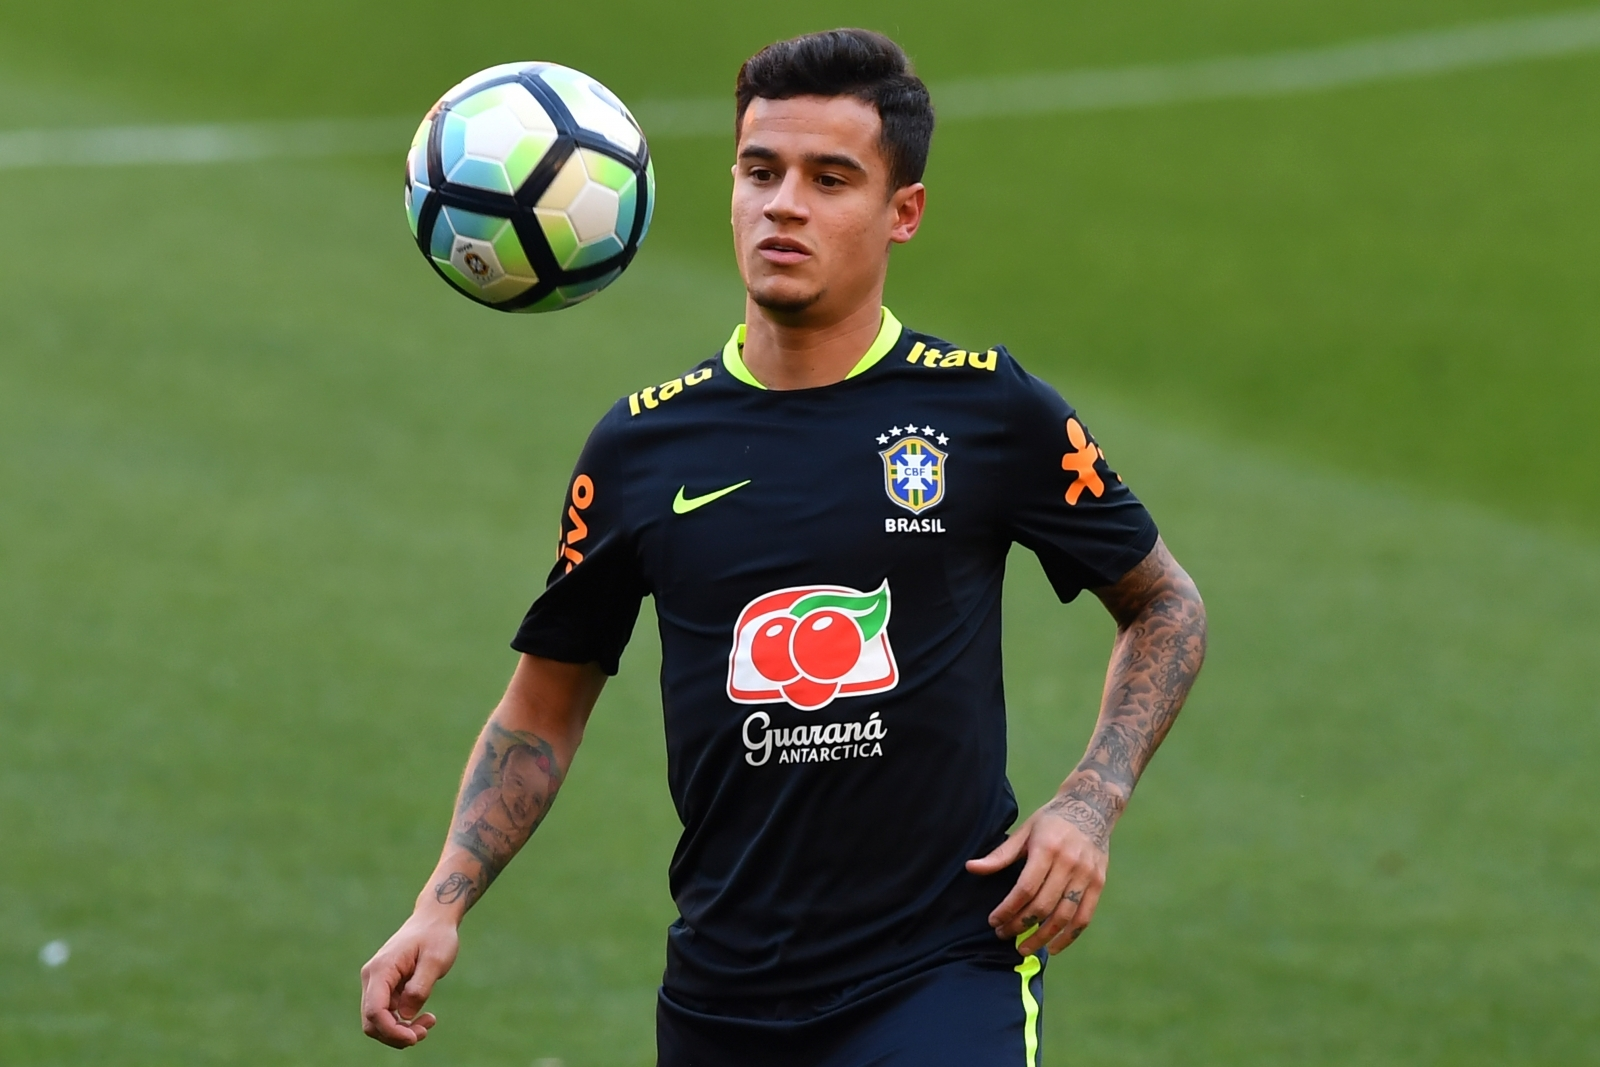 Philippe Coutinho on bench; Willian to start against Ecuador, says Brazil coach